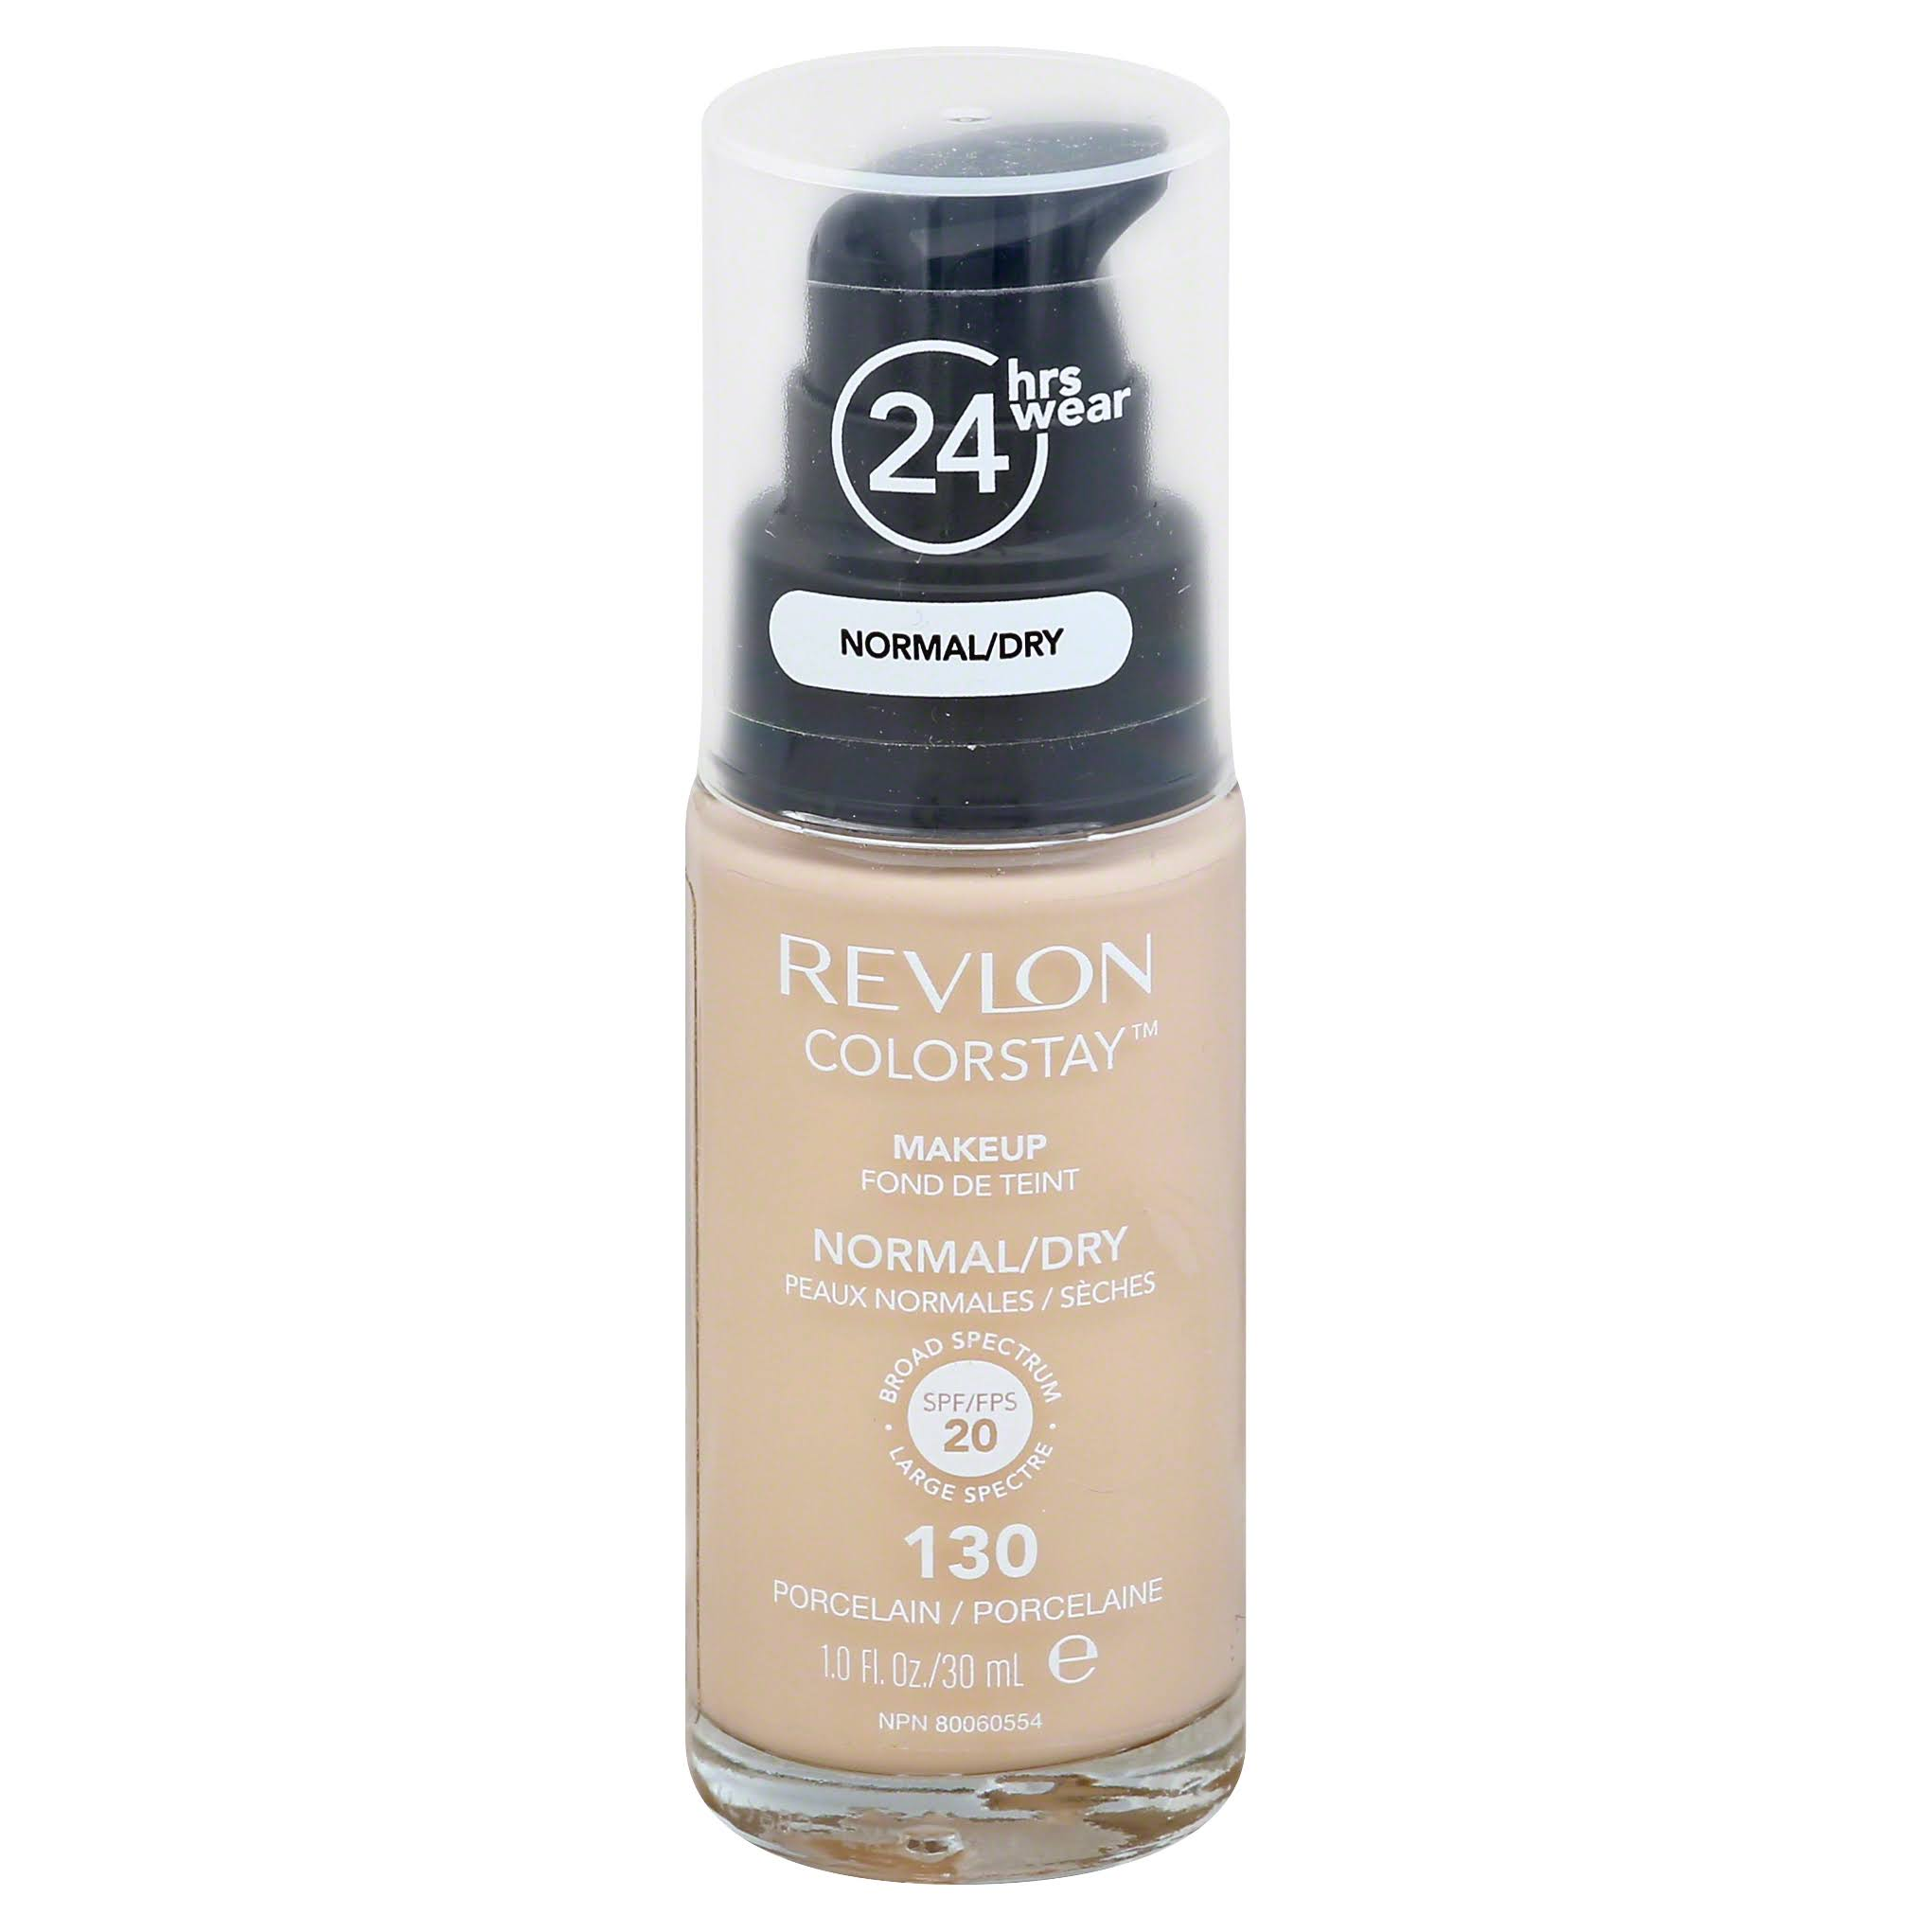 Revlon Colorstay Makeup For Normal and Dry Skin Foundation - 130 Porcelain, 30ml